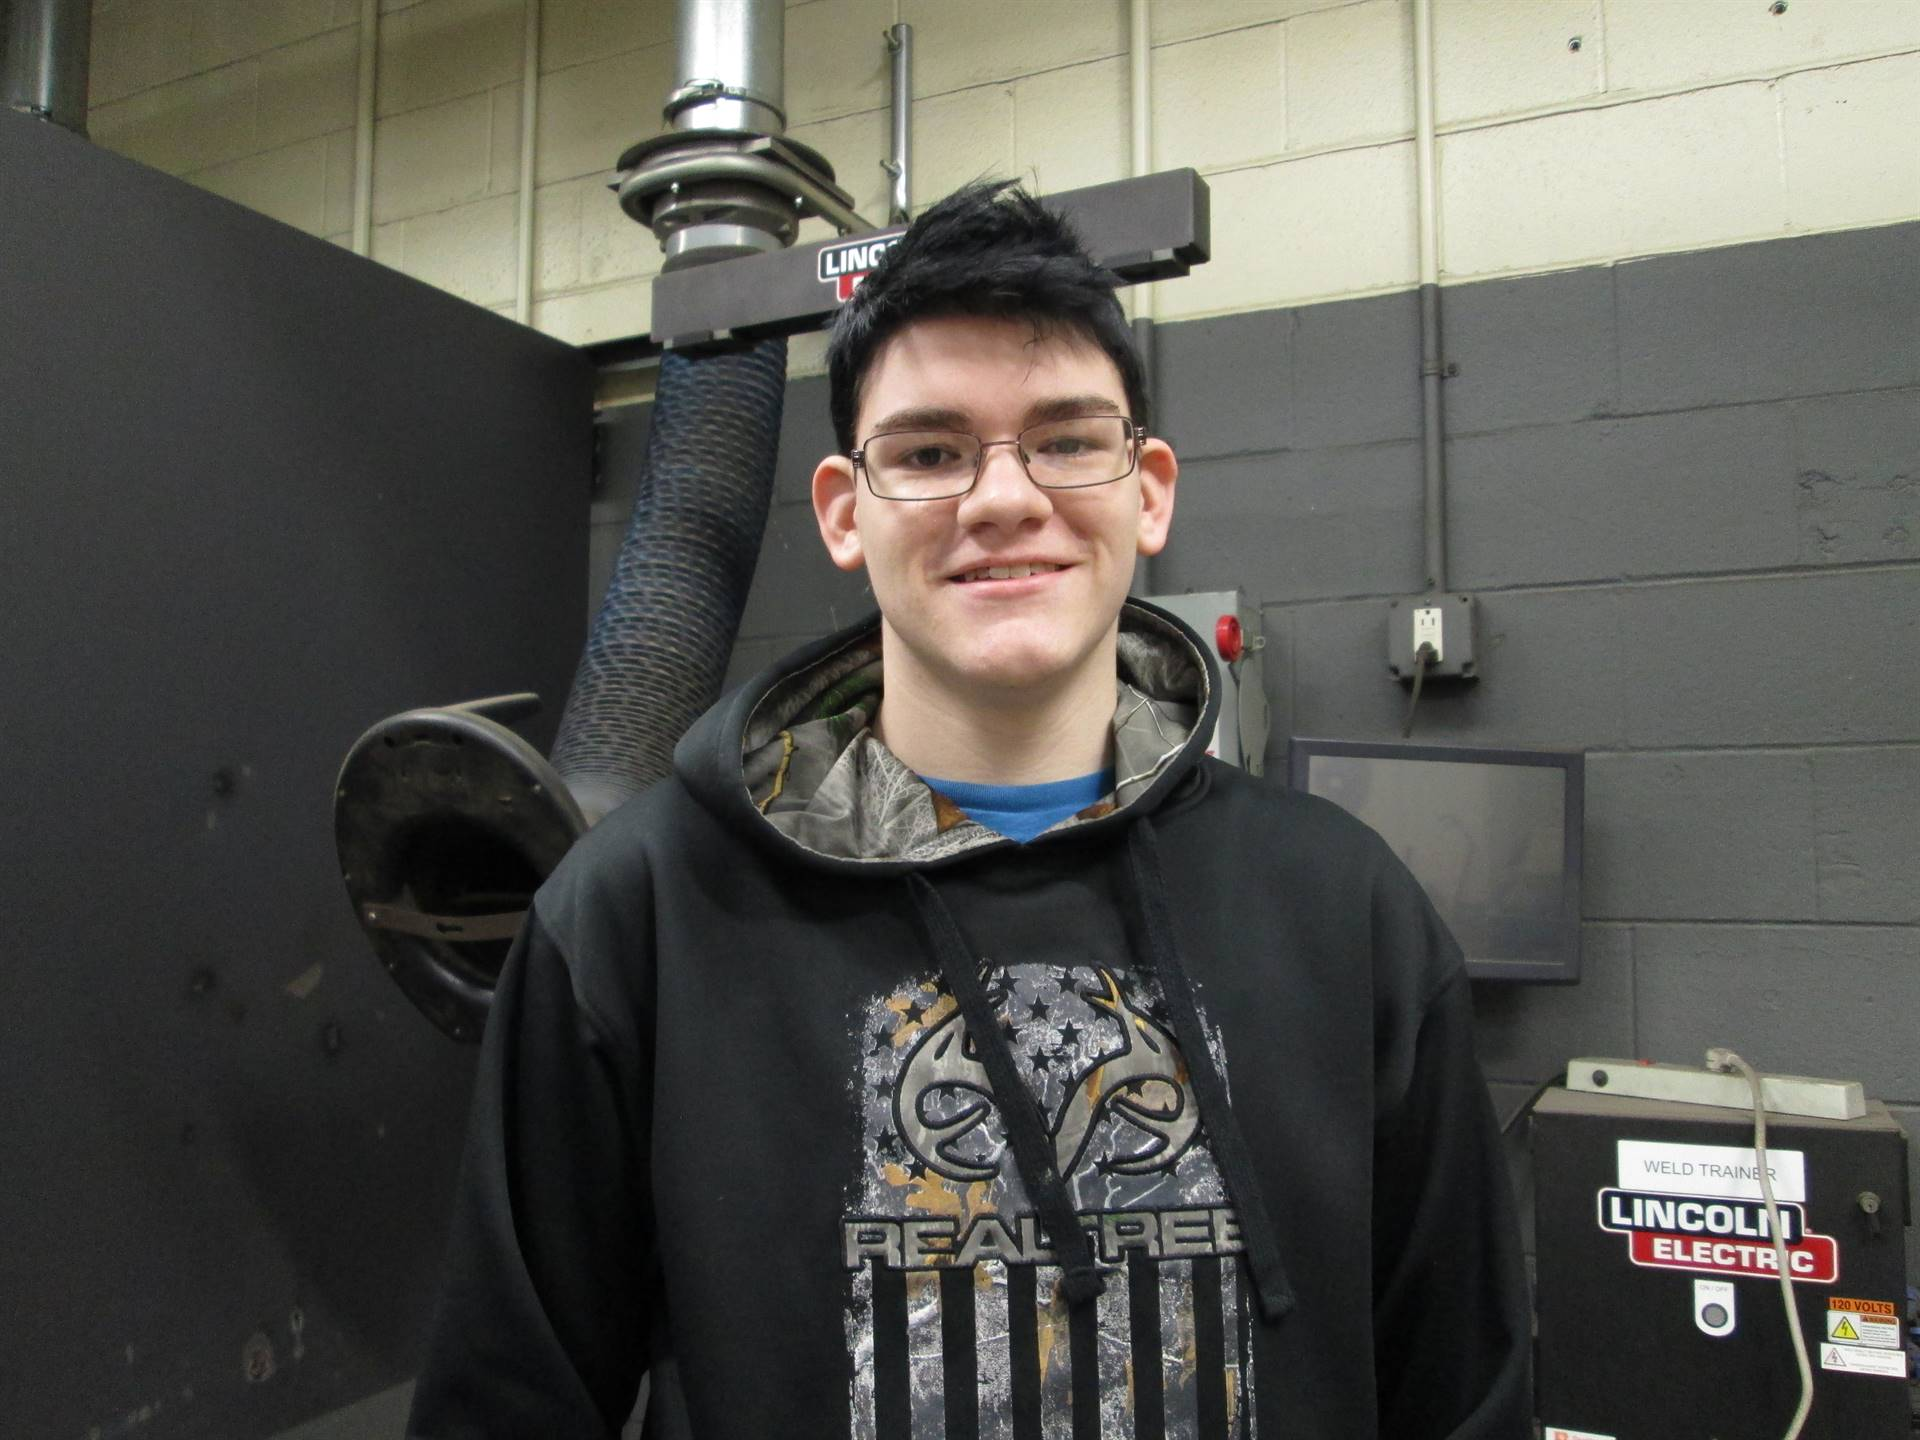 Chad Kirkbride - Welding Technology - Zanesville Steel Ltd.